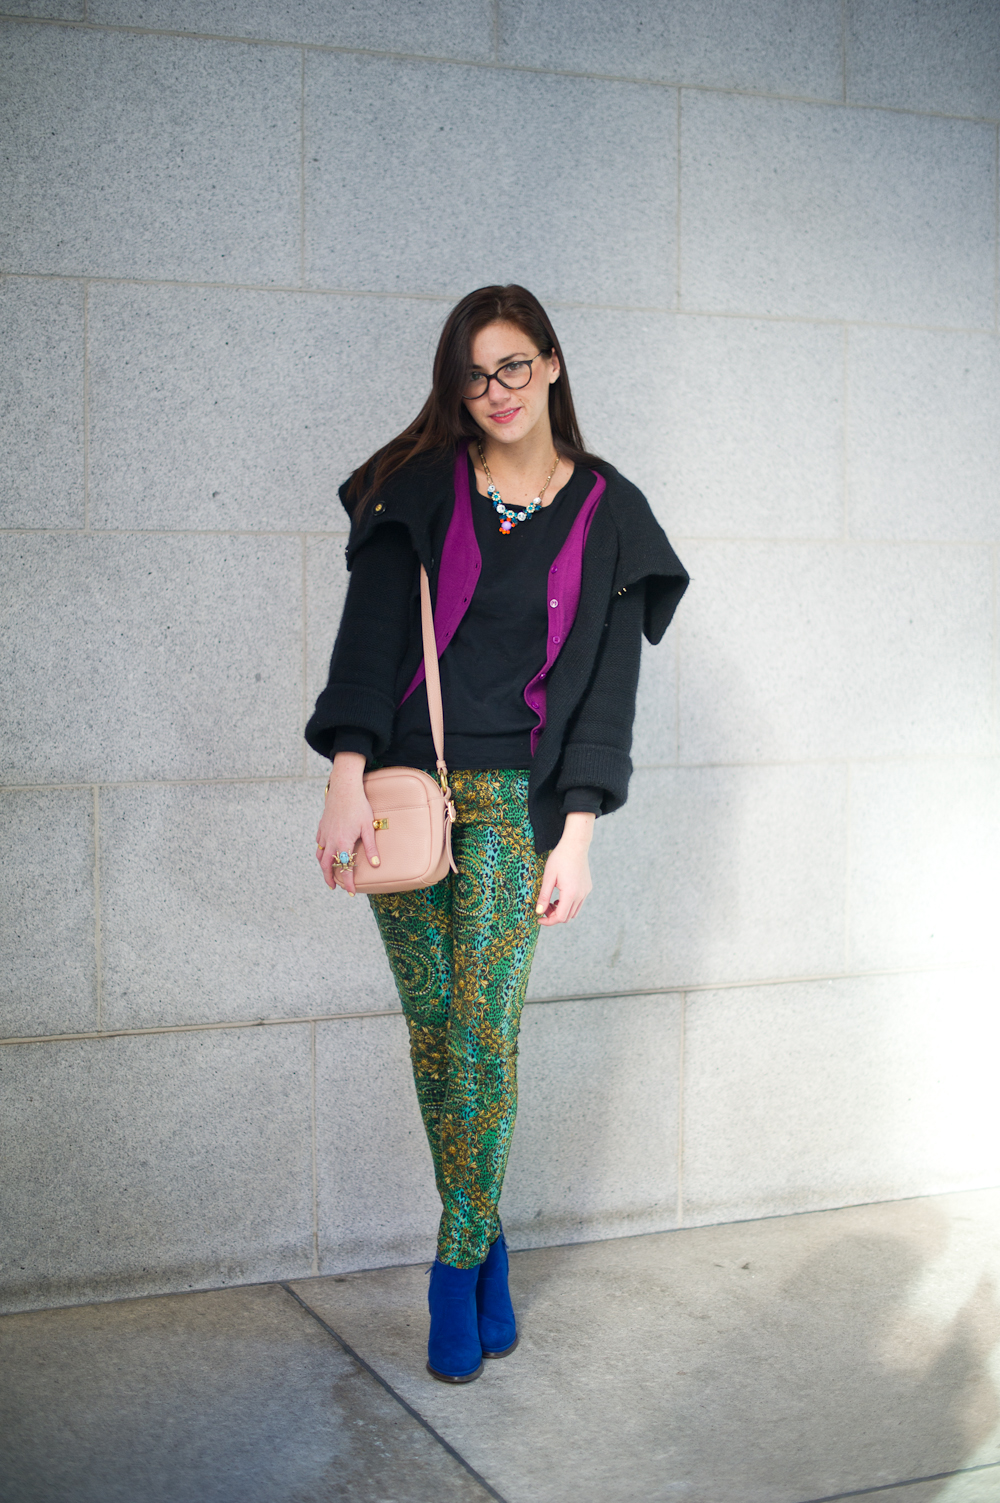 Tie Jacket : Marc by Marc Jacobs;  Amethyst Cardigan : Sway,  Black Sweater : Vince;  Printed Emerald Pants : Forever21;  Desmond Boot:  Jeffery Campbell;  Blush Bag : J.Crew;  Bug Cocktail Ring : Vintage, circa 1960s;  Jeweled Statement Necklace:  J.Crew